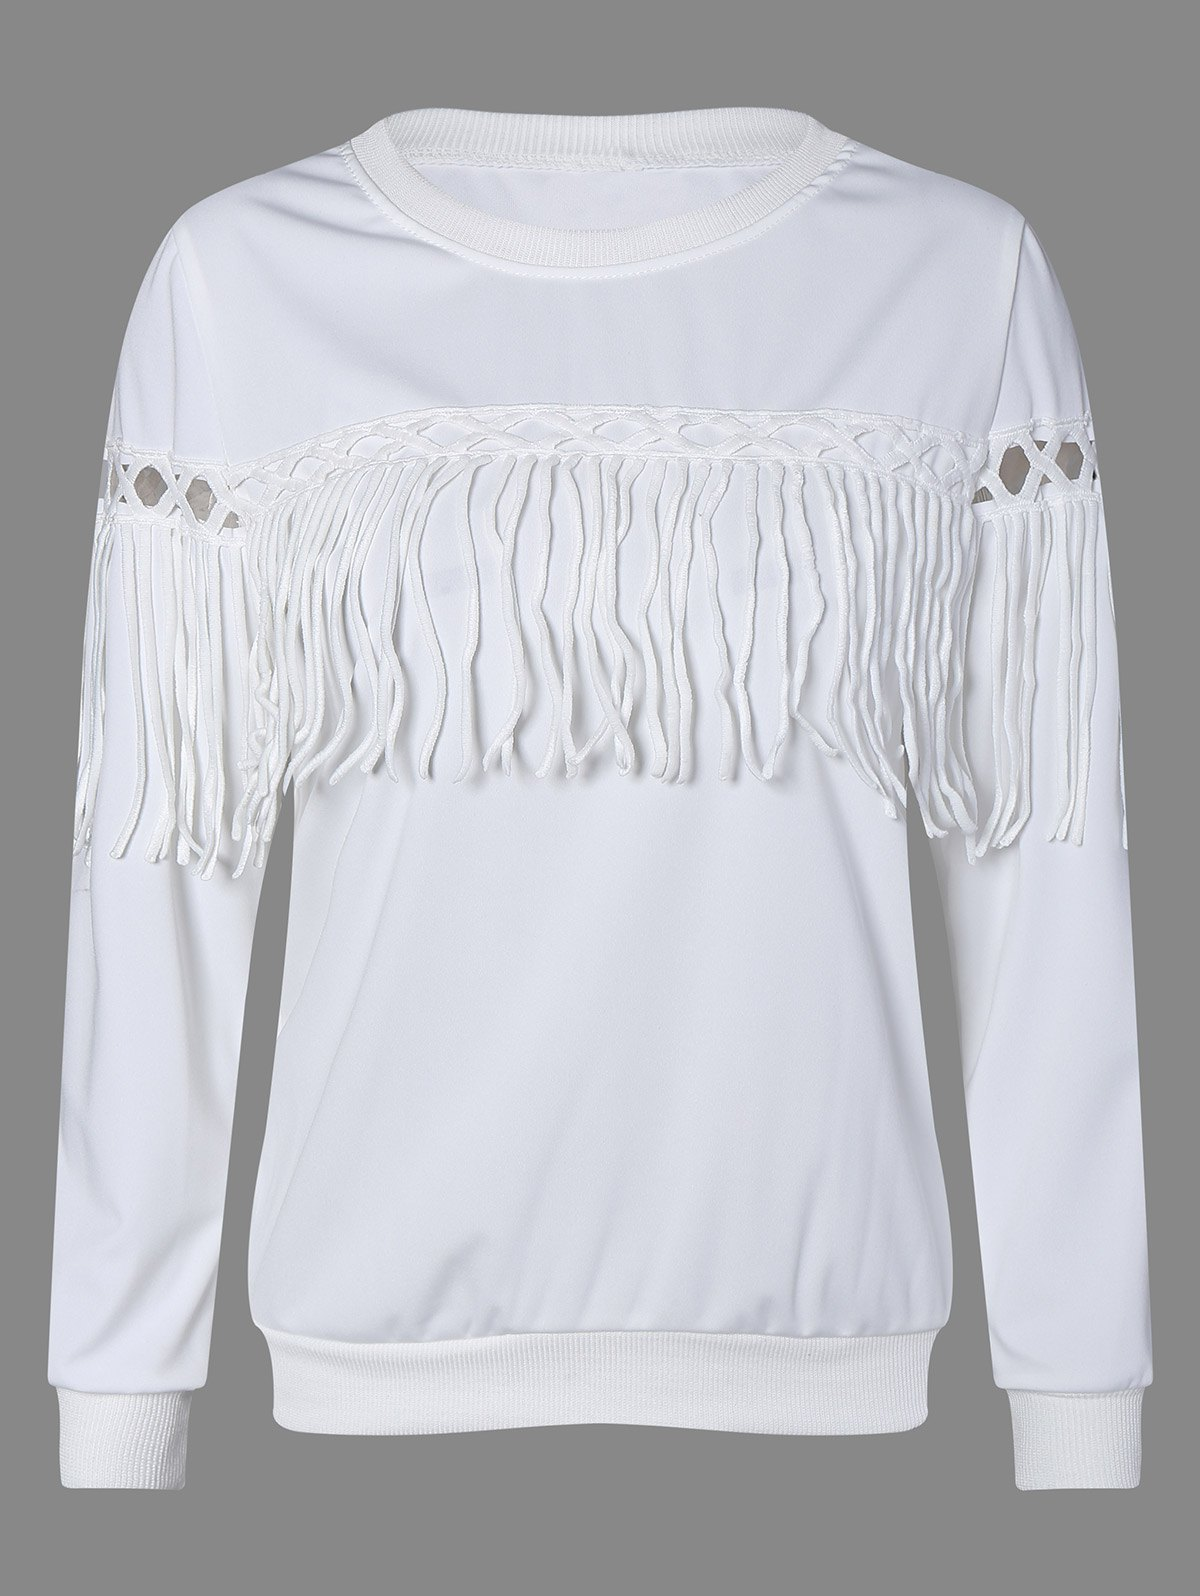 Fringed Openwork Sweatshirt - WHITE 3XL